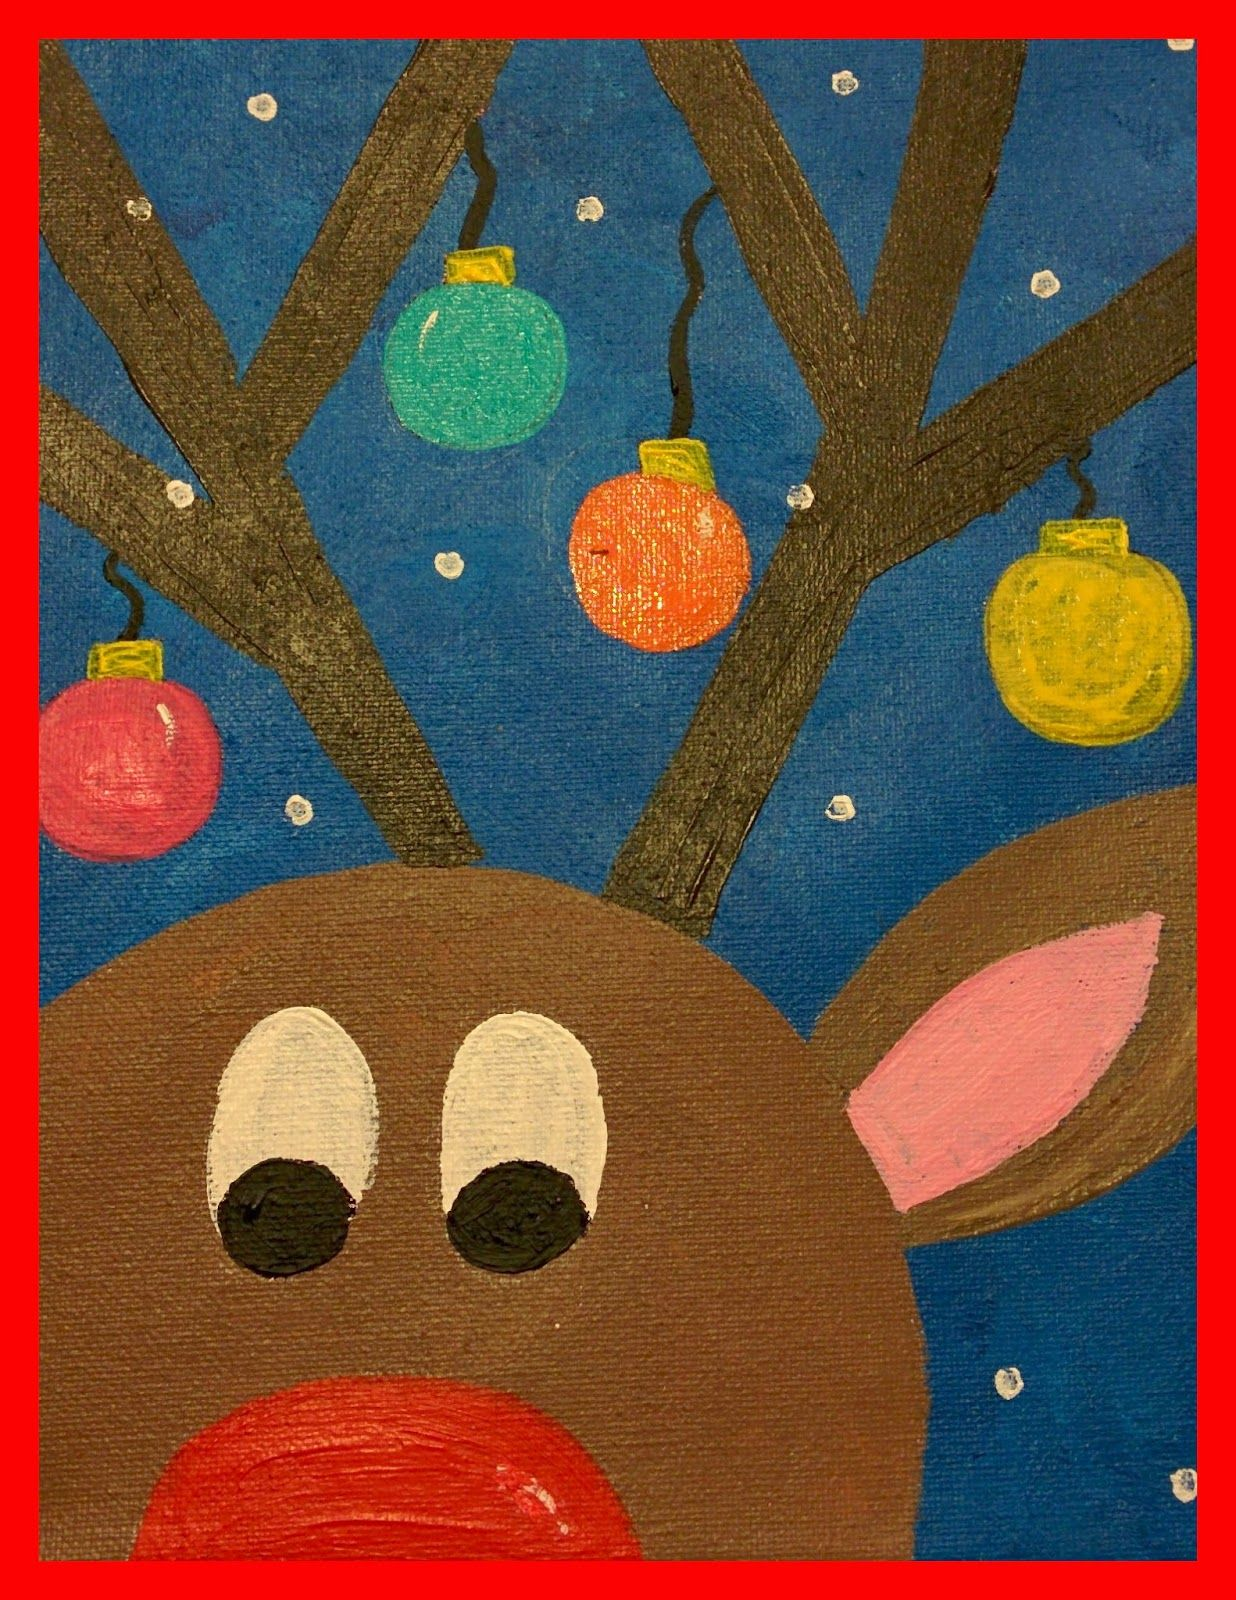 Granny Goes To School Guided Art Reindeer On Canvas Ideas KidsKids